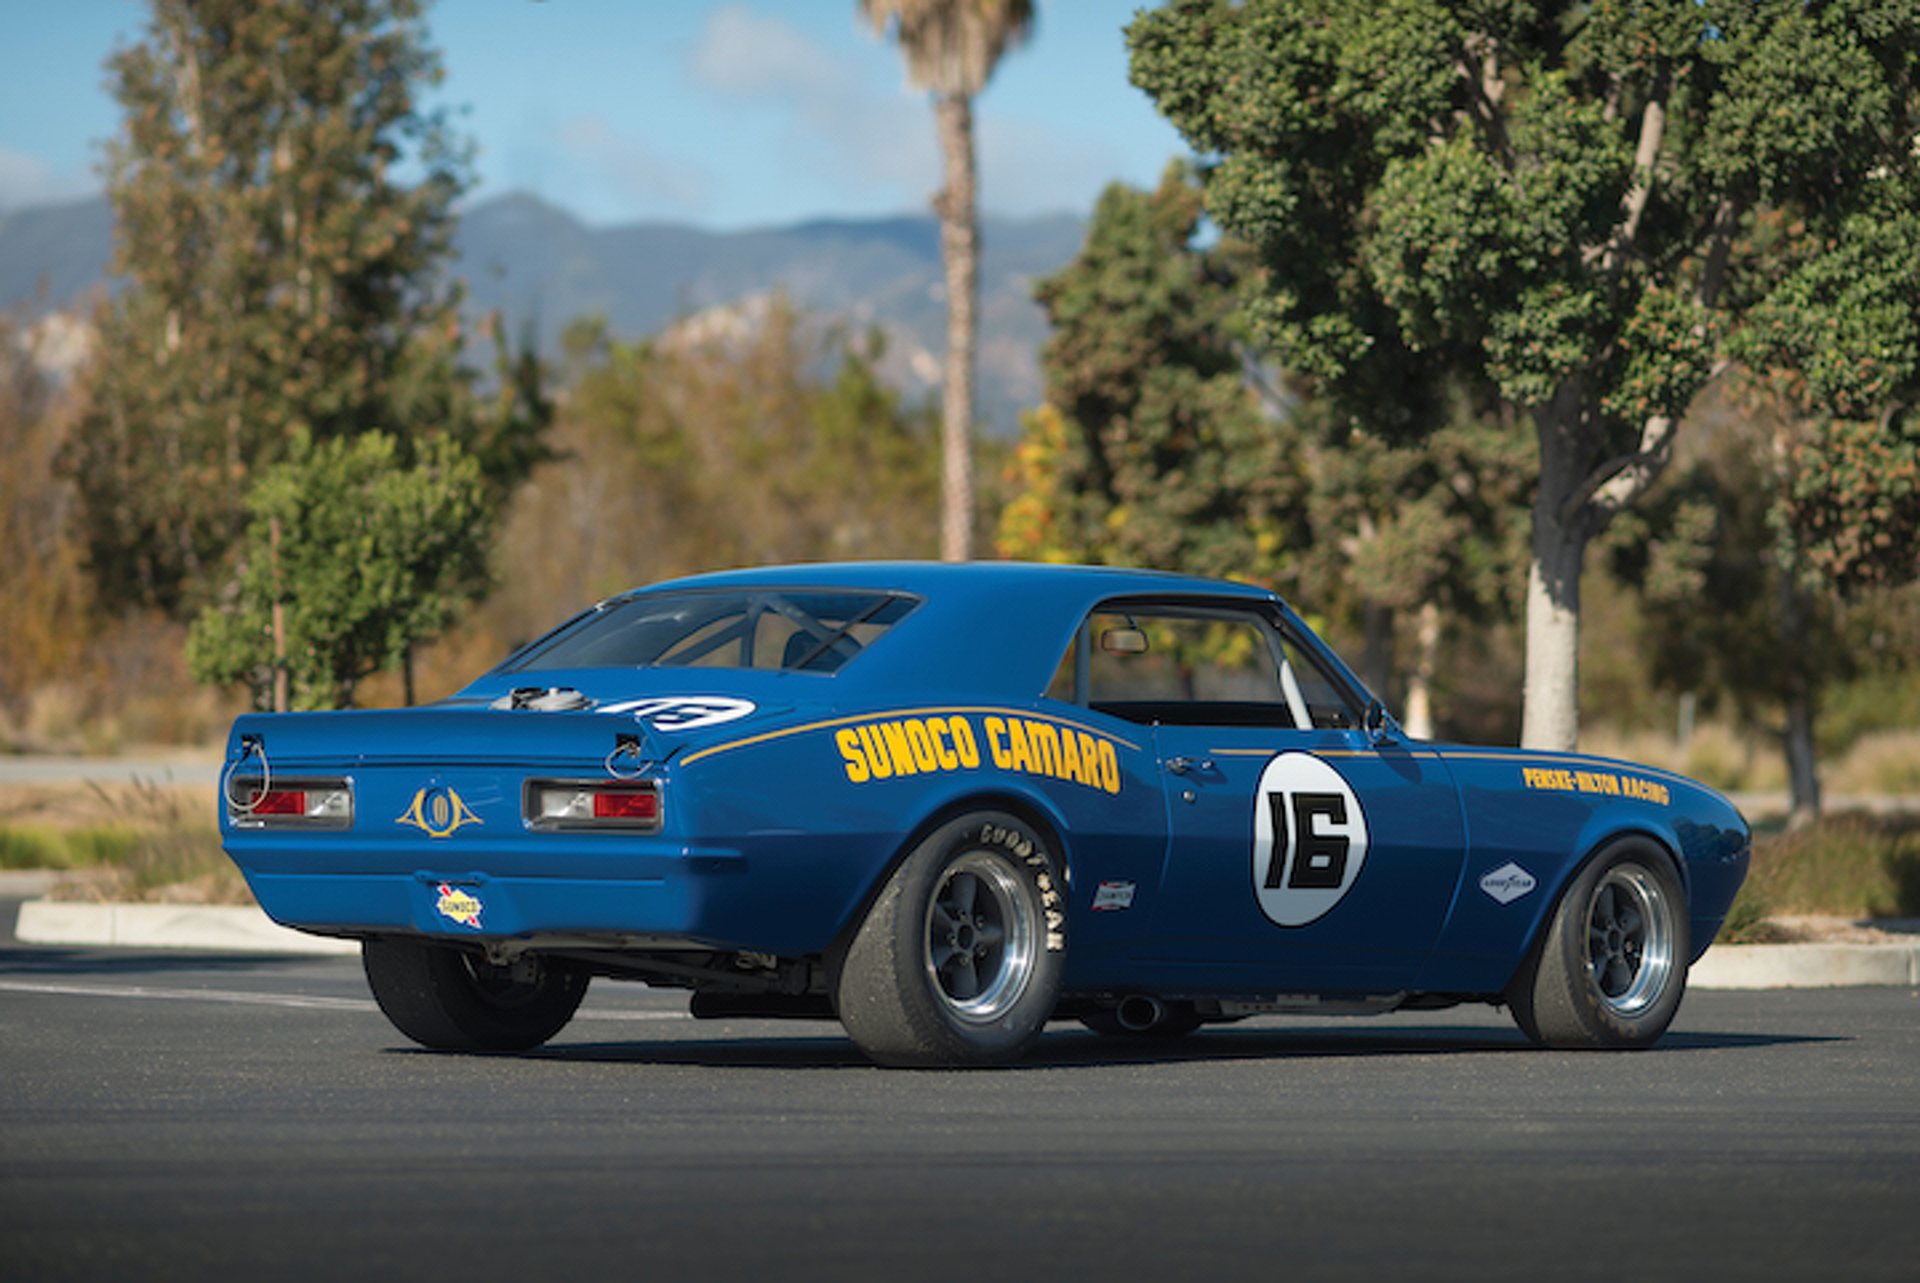 Classic 1968 Chevrolet Sunoco Camaro Trans Am Could Fetch $1 Million